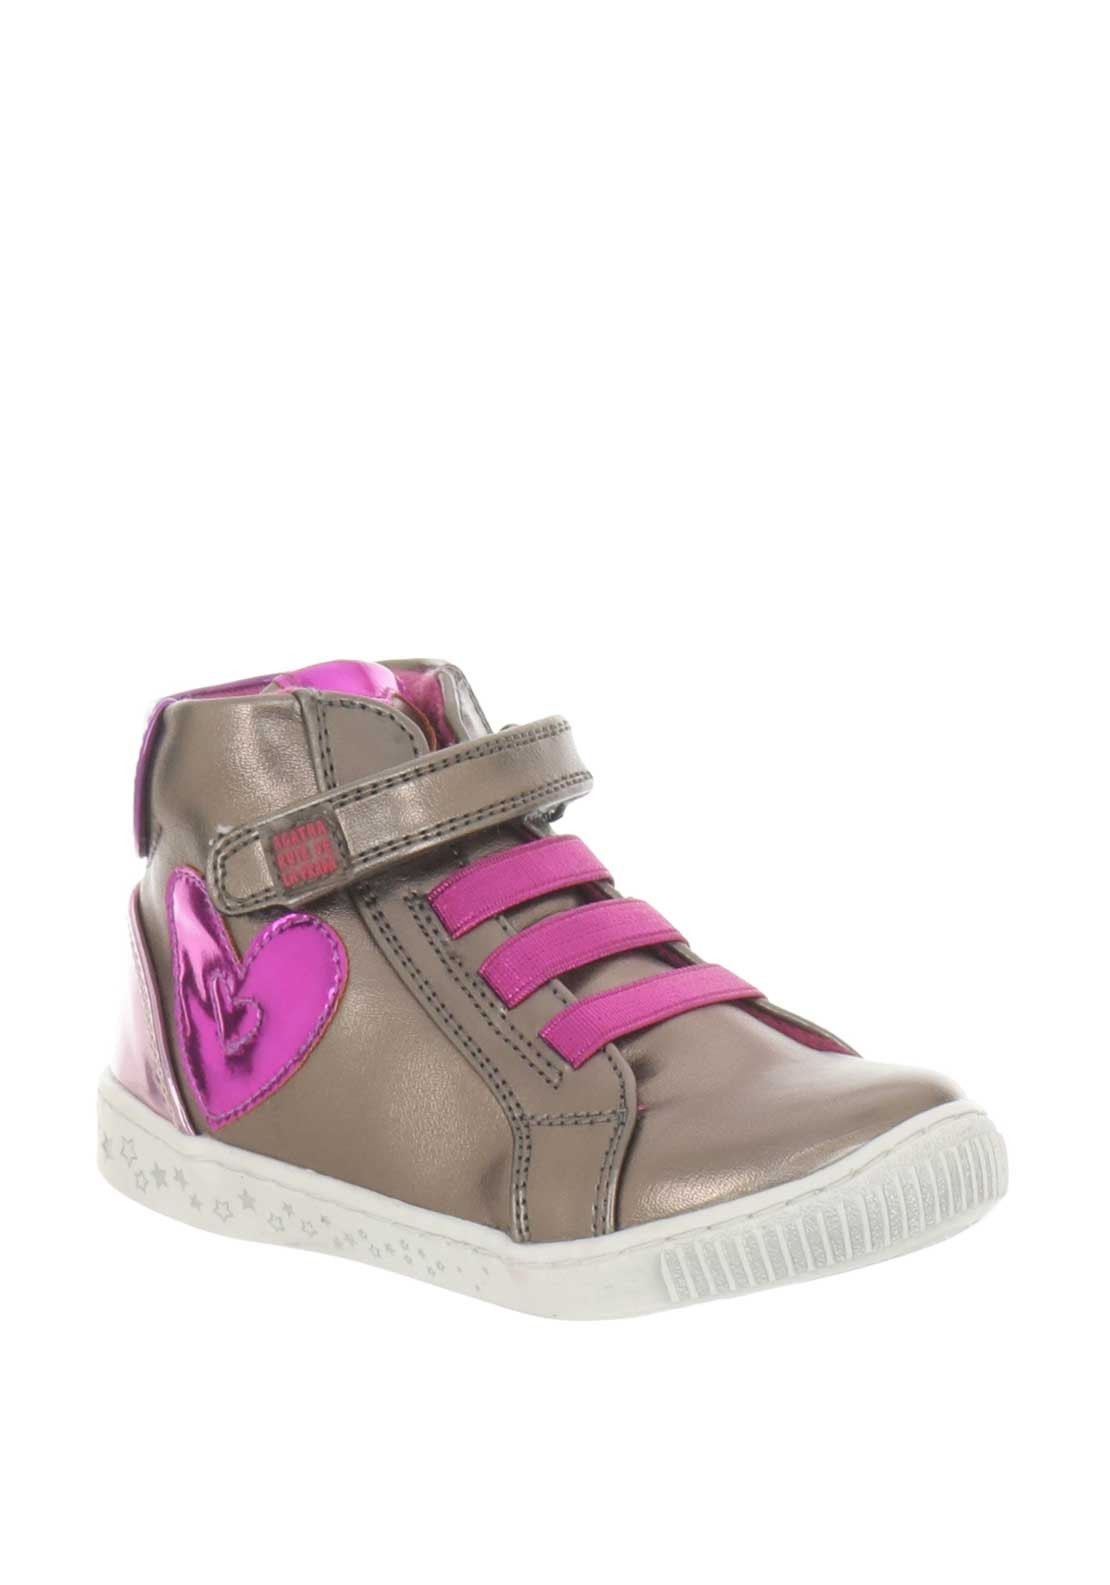 b6201fc2315 Agatha Ruiz De La Prada Girls Metallic Hi Top Trainers, Pewter. Be the  first to review this product